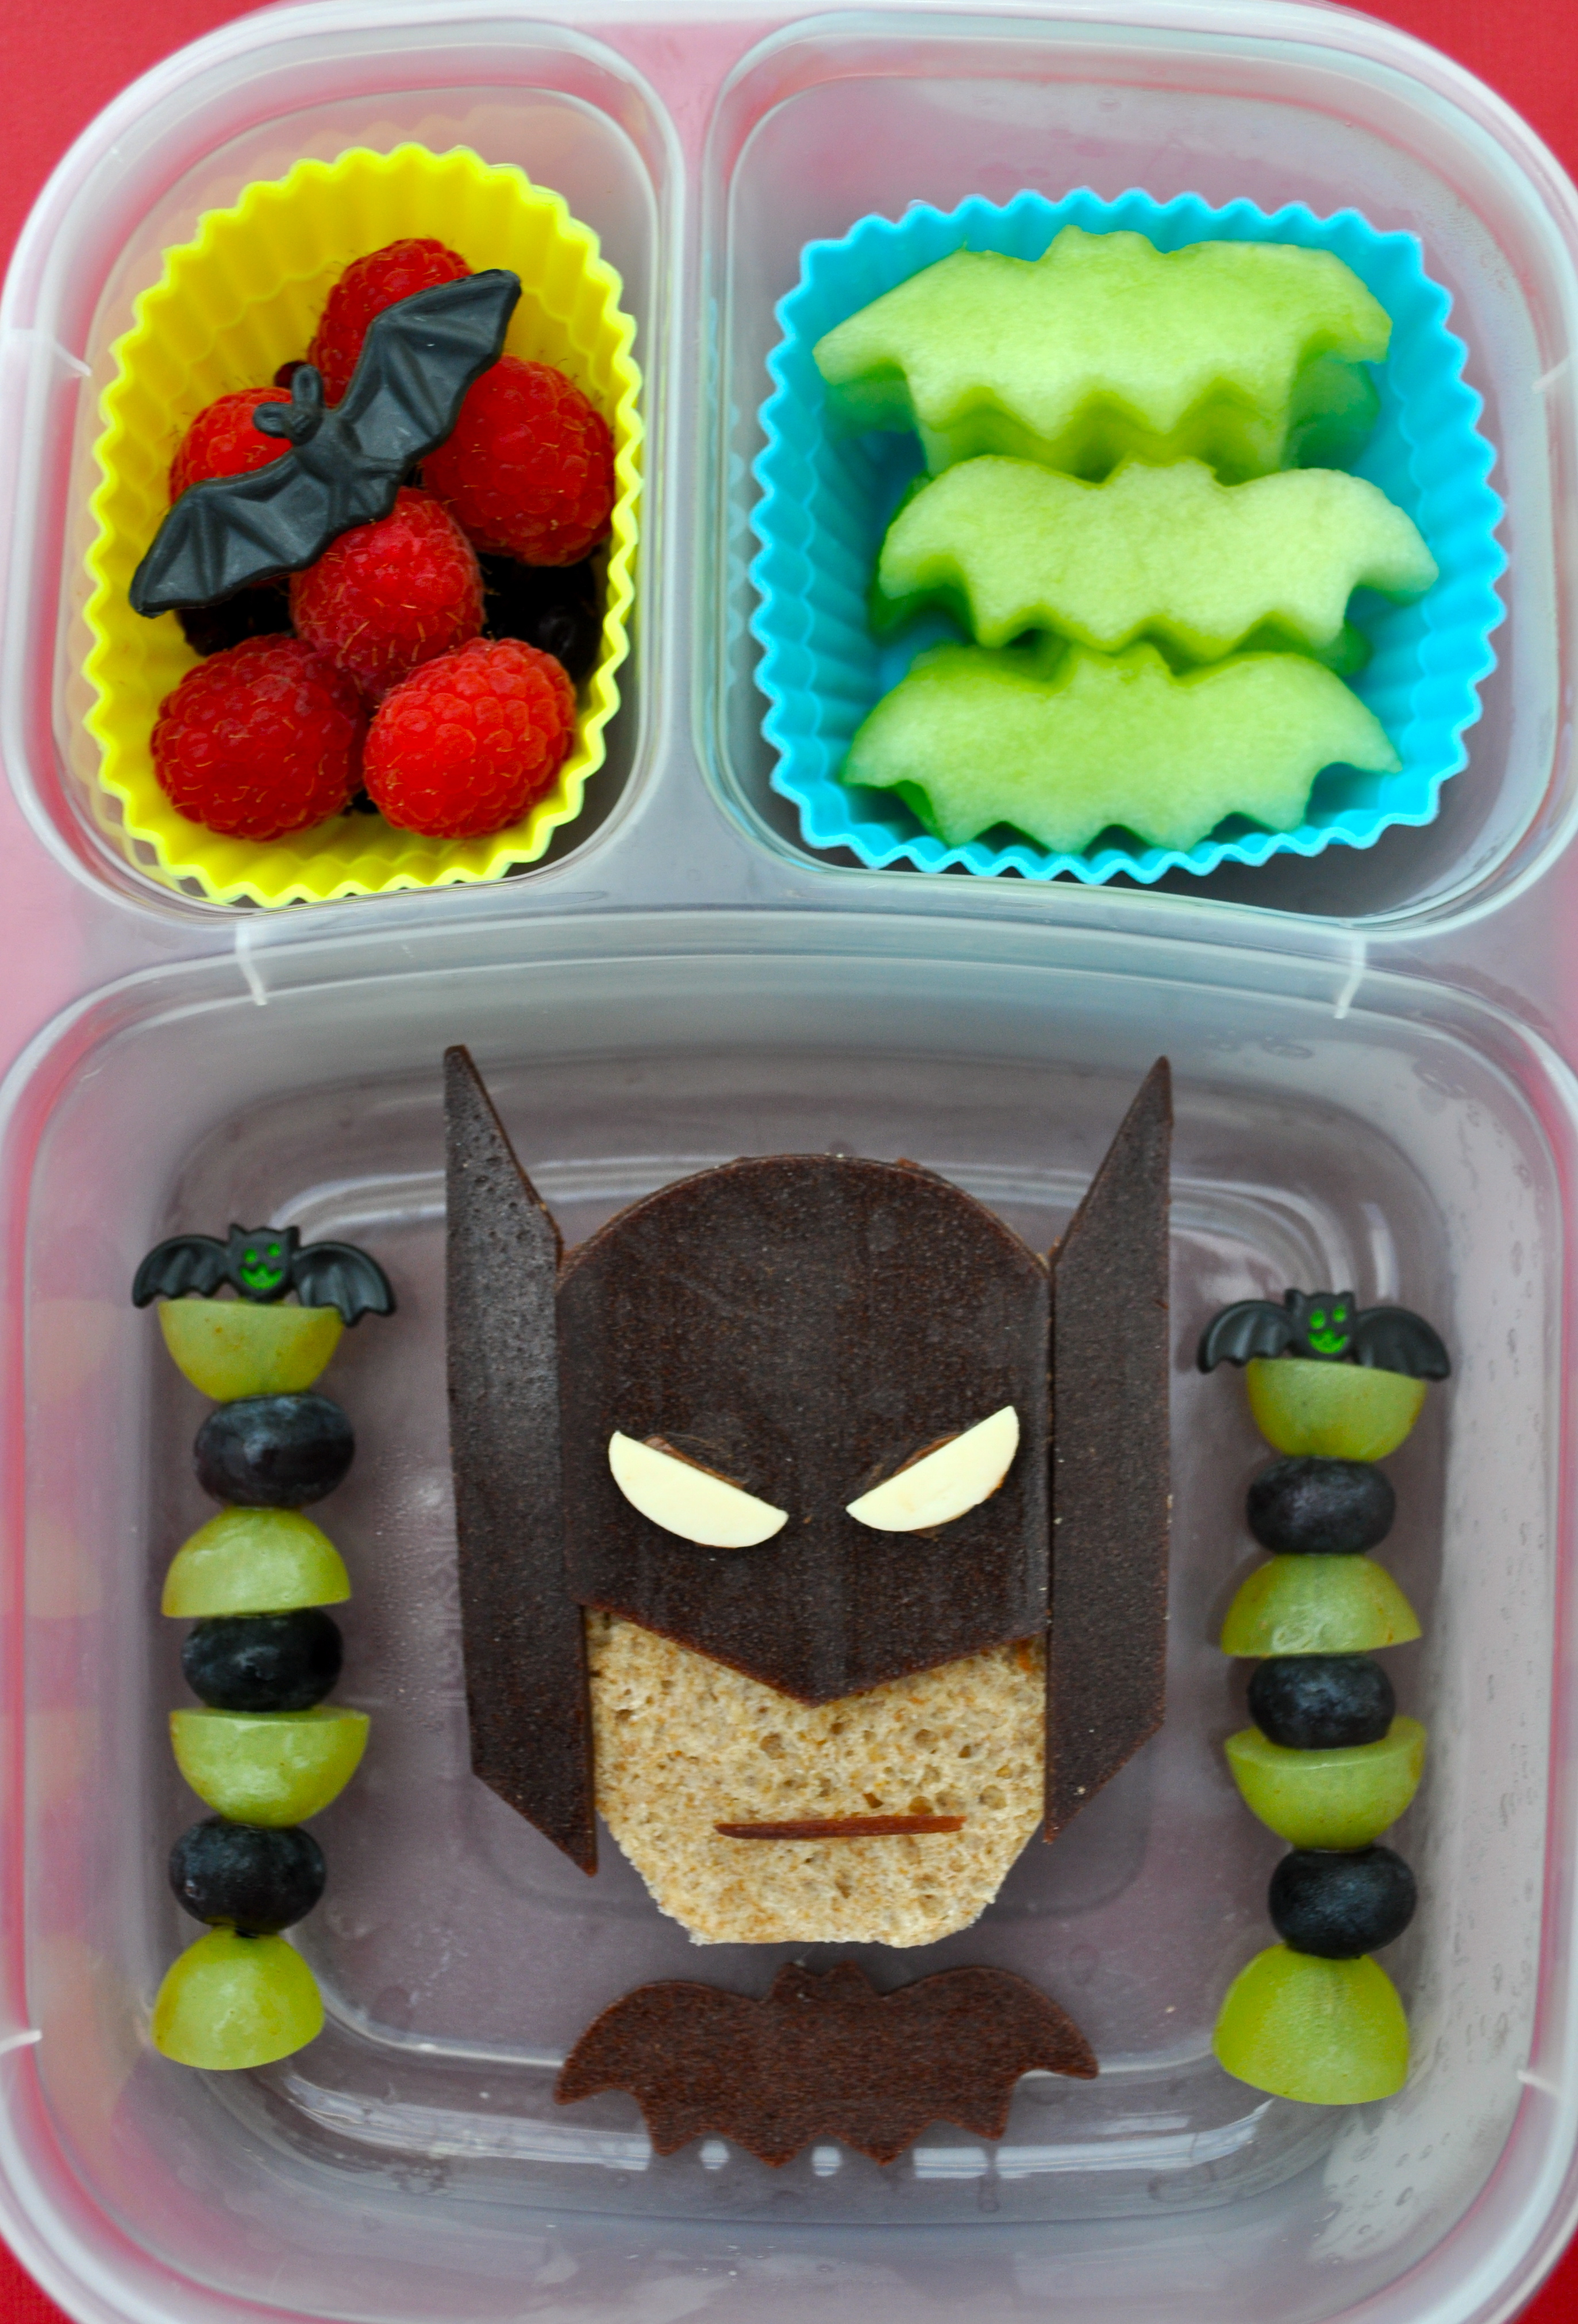 Miss G has the Spiderman lunch ... & Spidey and Batman | bentoriffic Aboutintivar.Com